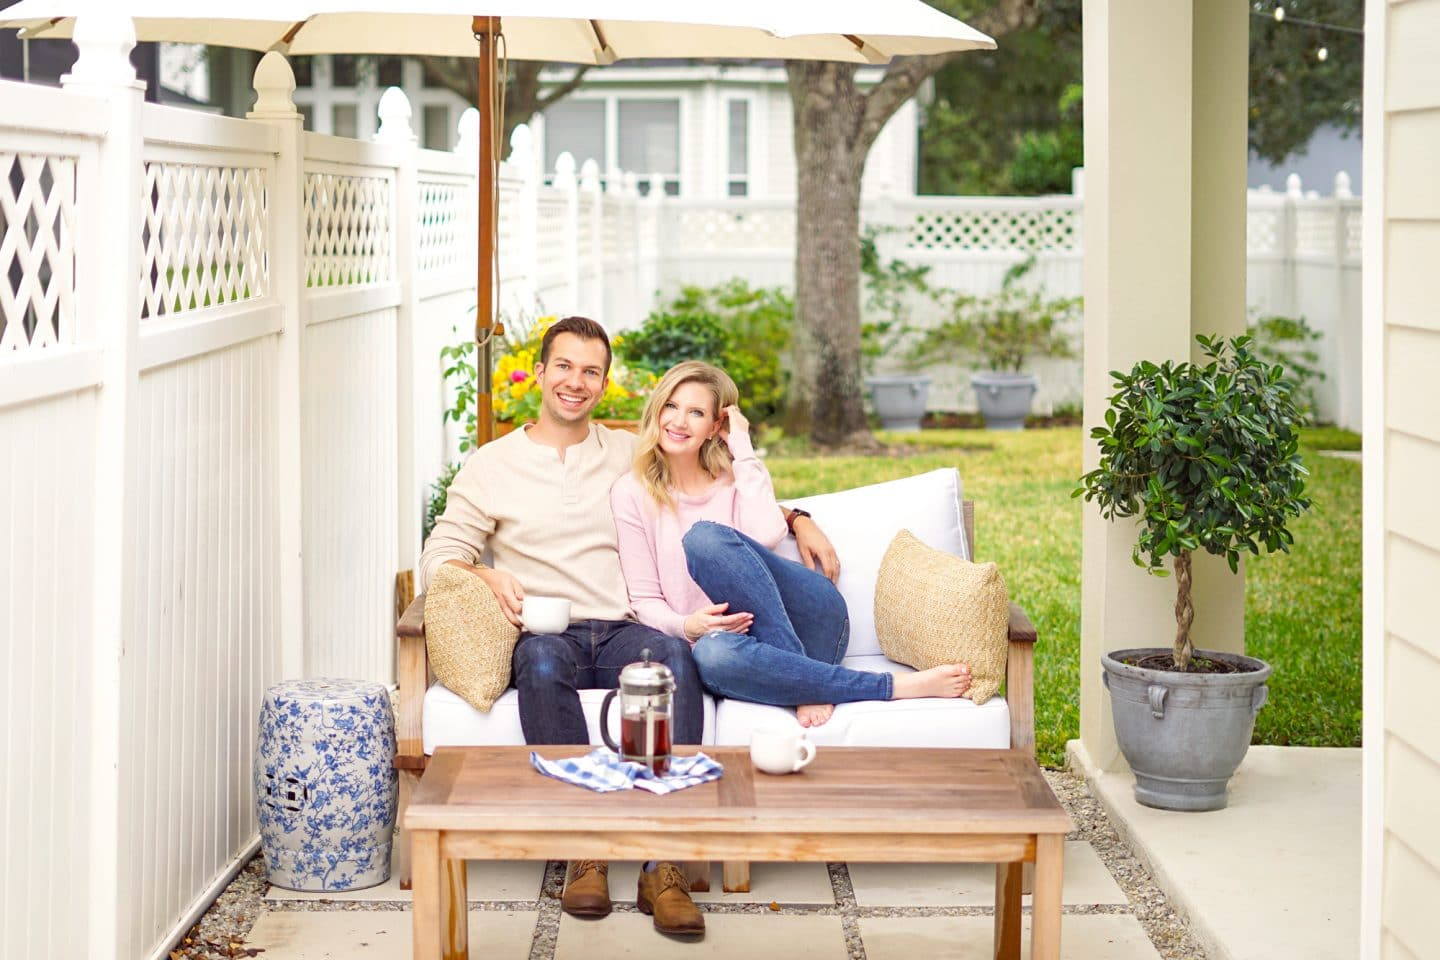 Blogger Ashley Brooke and her husband Ryan in their sunny Florida home | www.ashleybrookedesigns.com